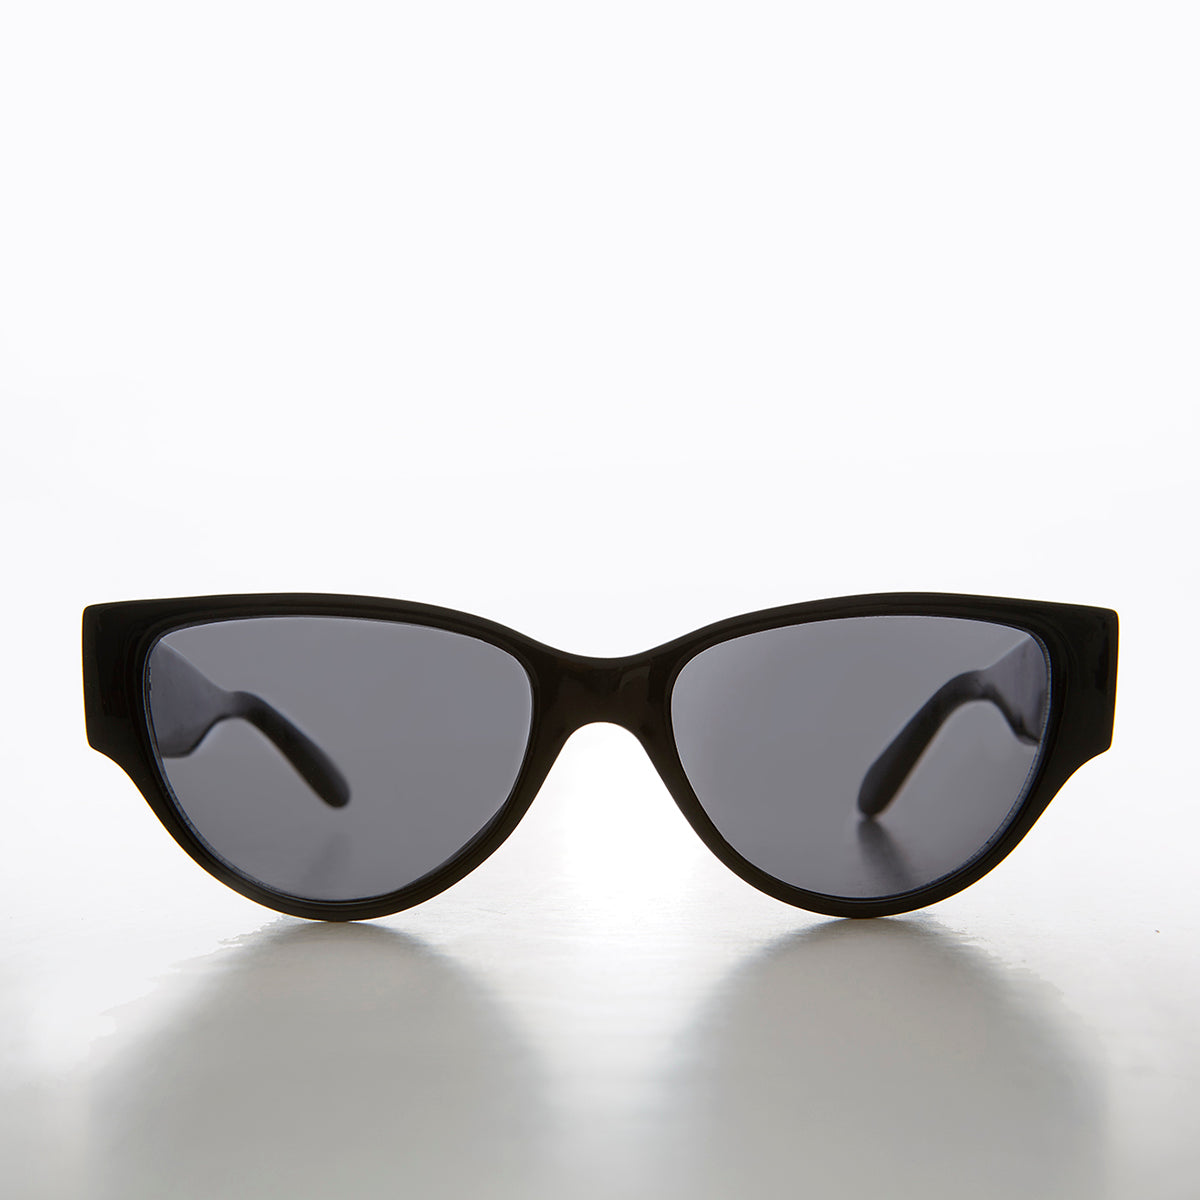 Beatnik Vintage Cat Eye Sunglass - Nolita